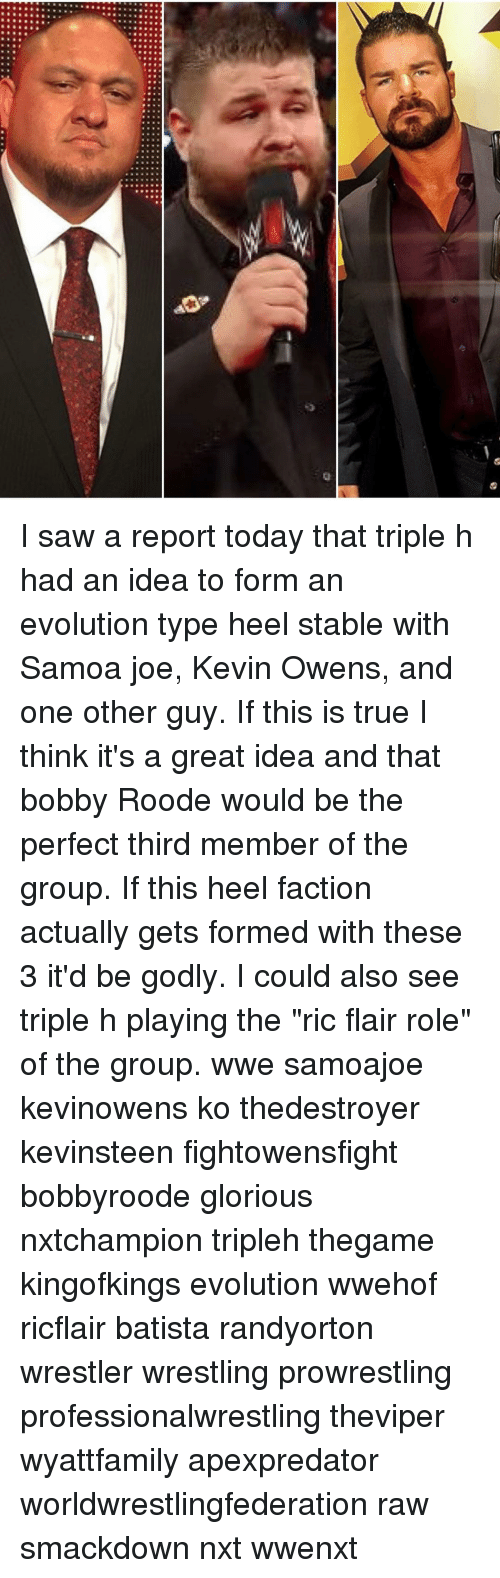 """Ric Flair: 20 I saw a report today that triple h had an idea to form an evolution type heel stable with Samoa joe, Kevin Owens, and one other guy. If this is true I think it's a great idea and that bobby Roode would be the perfect third member of the group. If this heel faction actually gets formed with these 3 it'd be godly. I could also see triple h playing the """"ric flair role"""" of the group. wwe samoajoe kevinowens ko thedestroyer kevinsteen fightowensfight bobbyroode glorious nxtchampion tripleh thegame kingofkings evolution wwehof ricflair batista randyorton wrestler wrestling prowrestling professionalwrestling theviper wyattfamily apexpredator worldwrestlingfederation raw smackdown nxt wwenxt"""